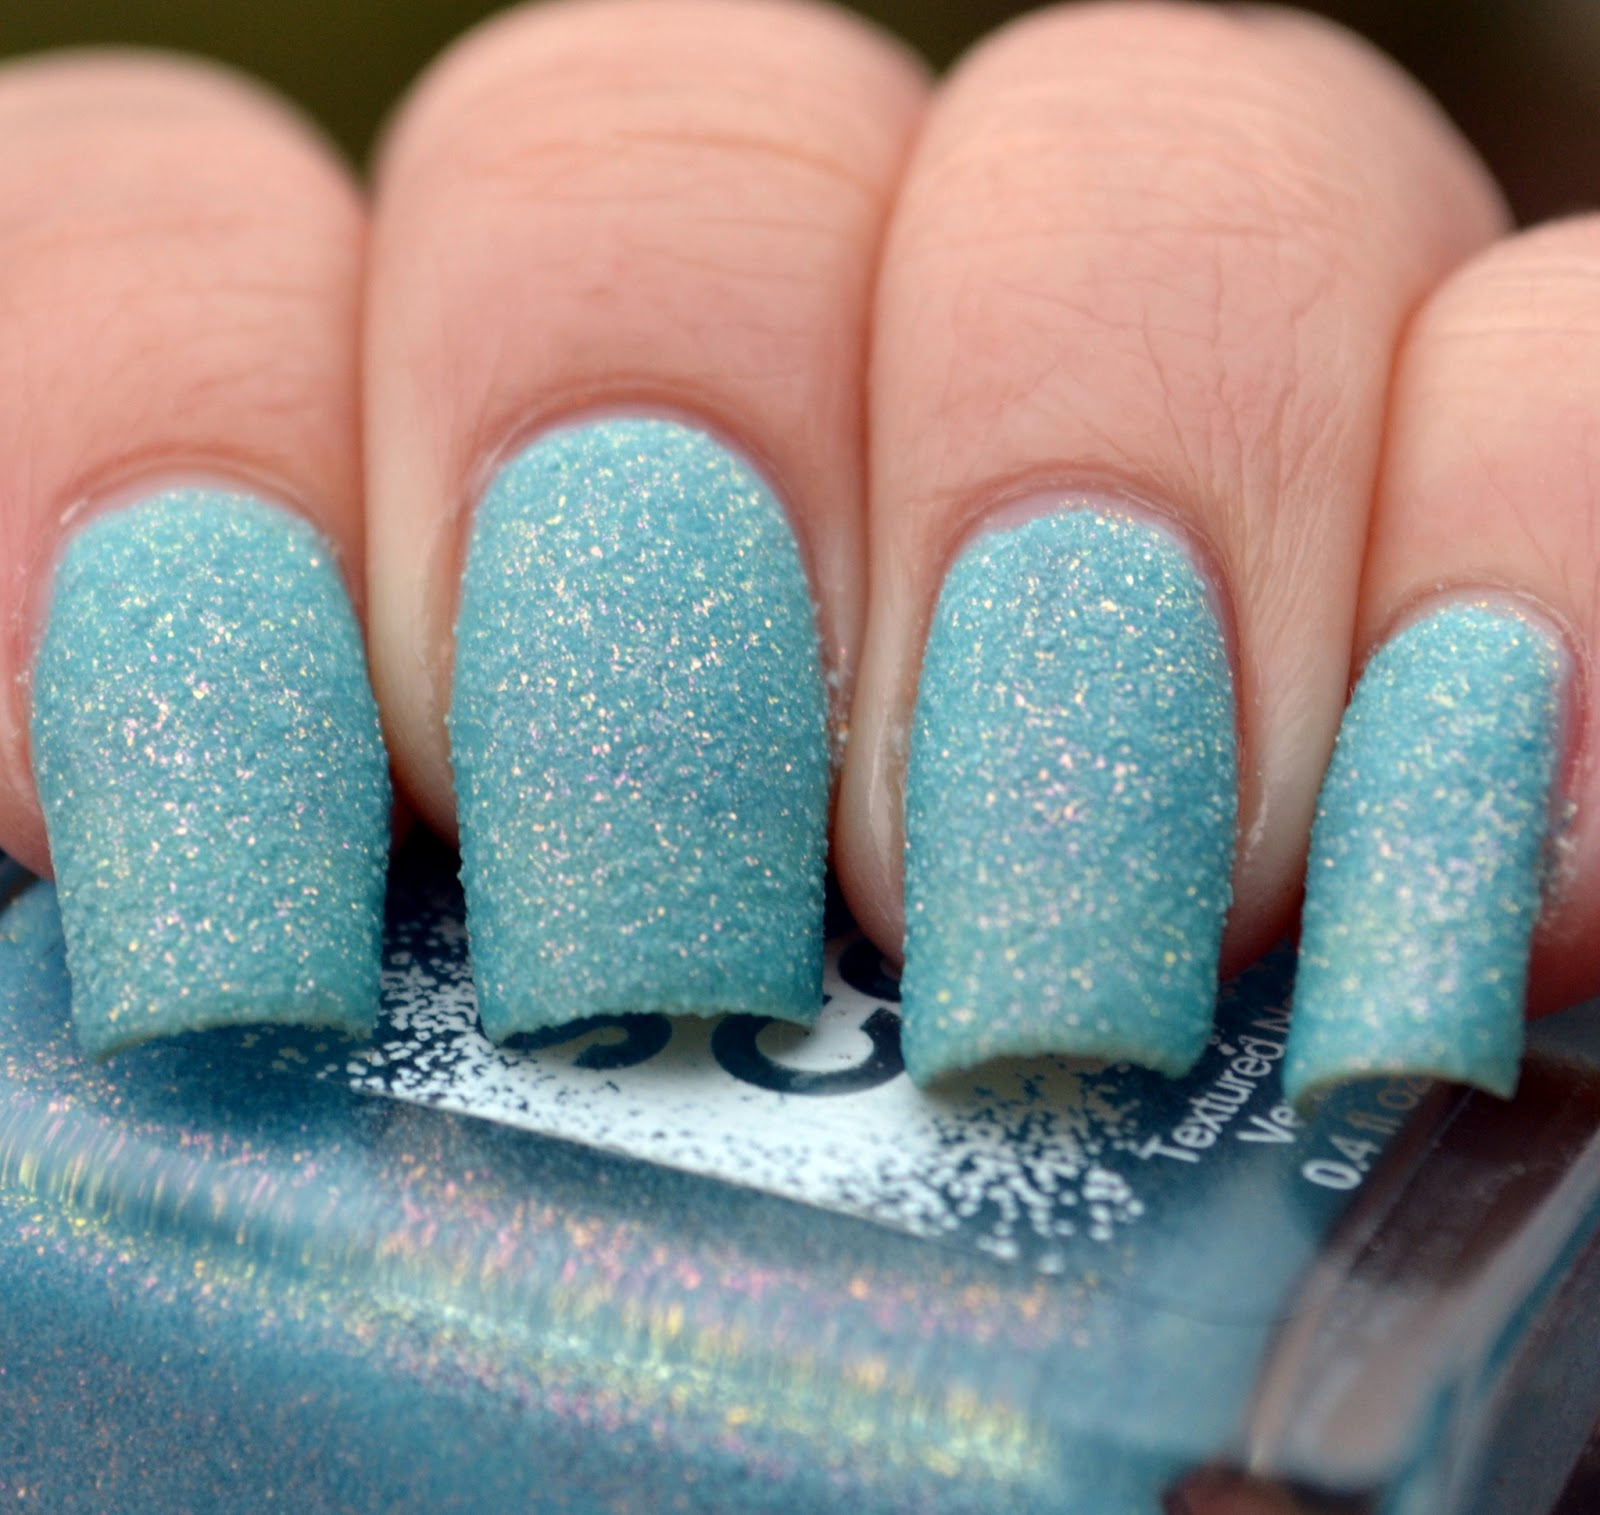 http://lenas-sofa.blogspot.de/2014/03/sally-hansen-sugar-coat-210-royal-icing.html